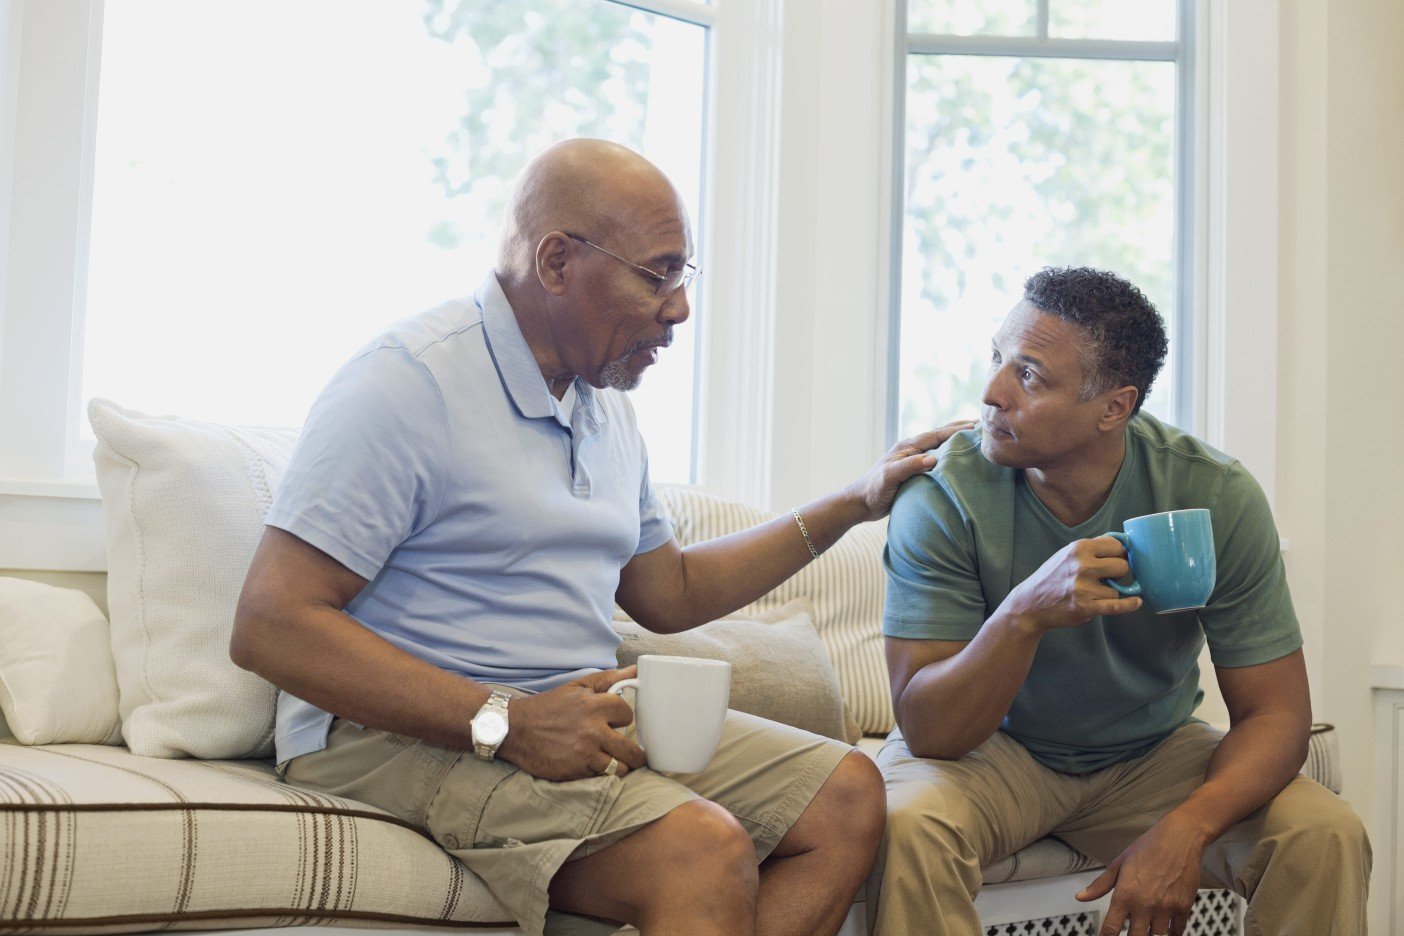 Two men drinking coffee discuss urologic cancer support groups in a well-lit living room